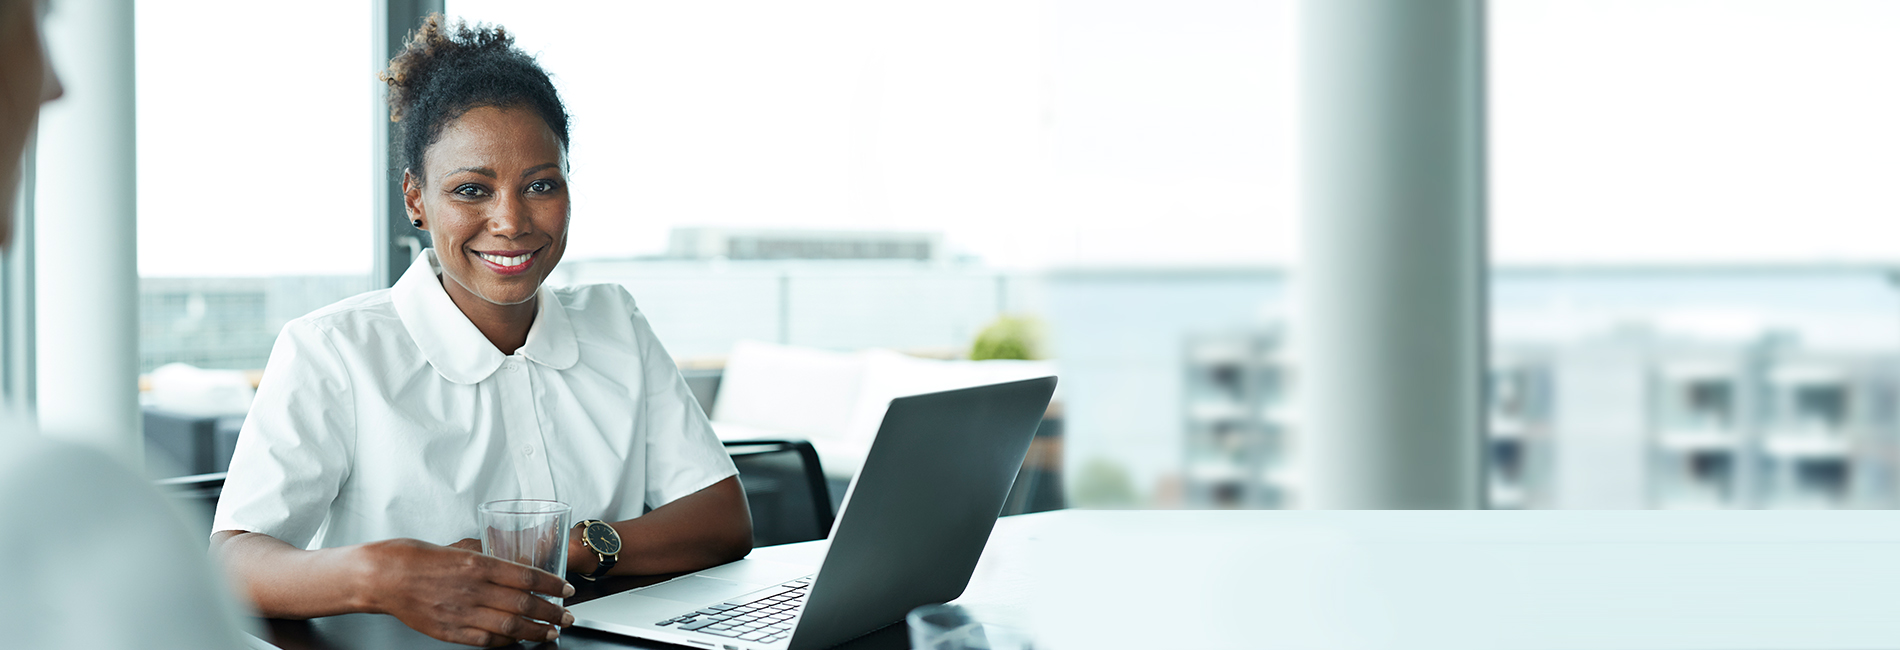 Female business professional sitting in a meeting room smiling with a glass of water in her hand and a laptop in front of her